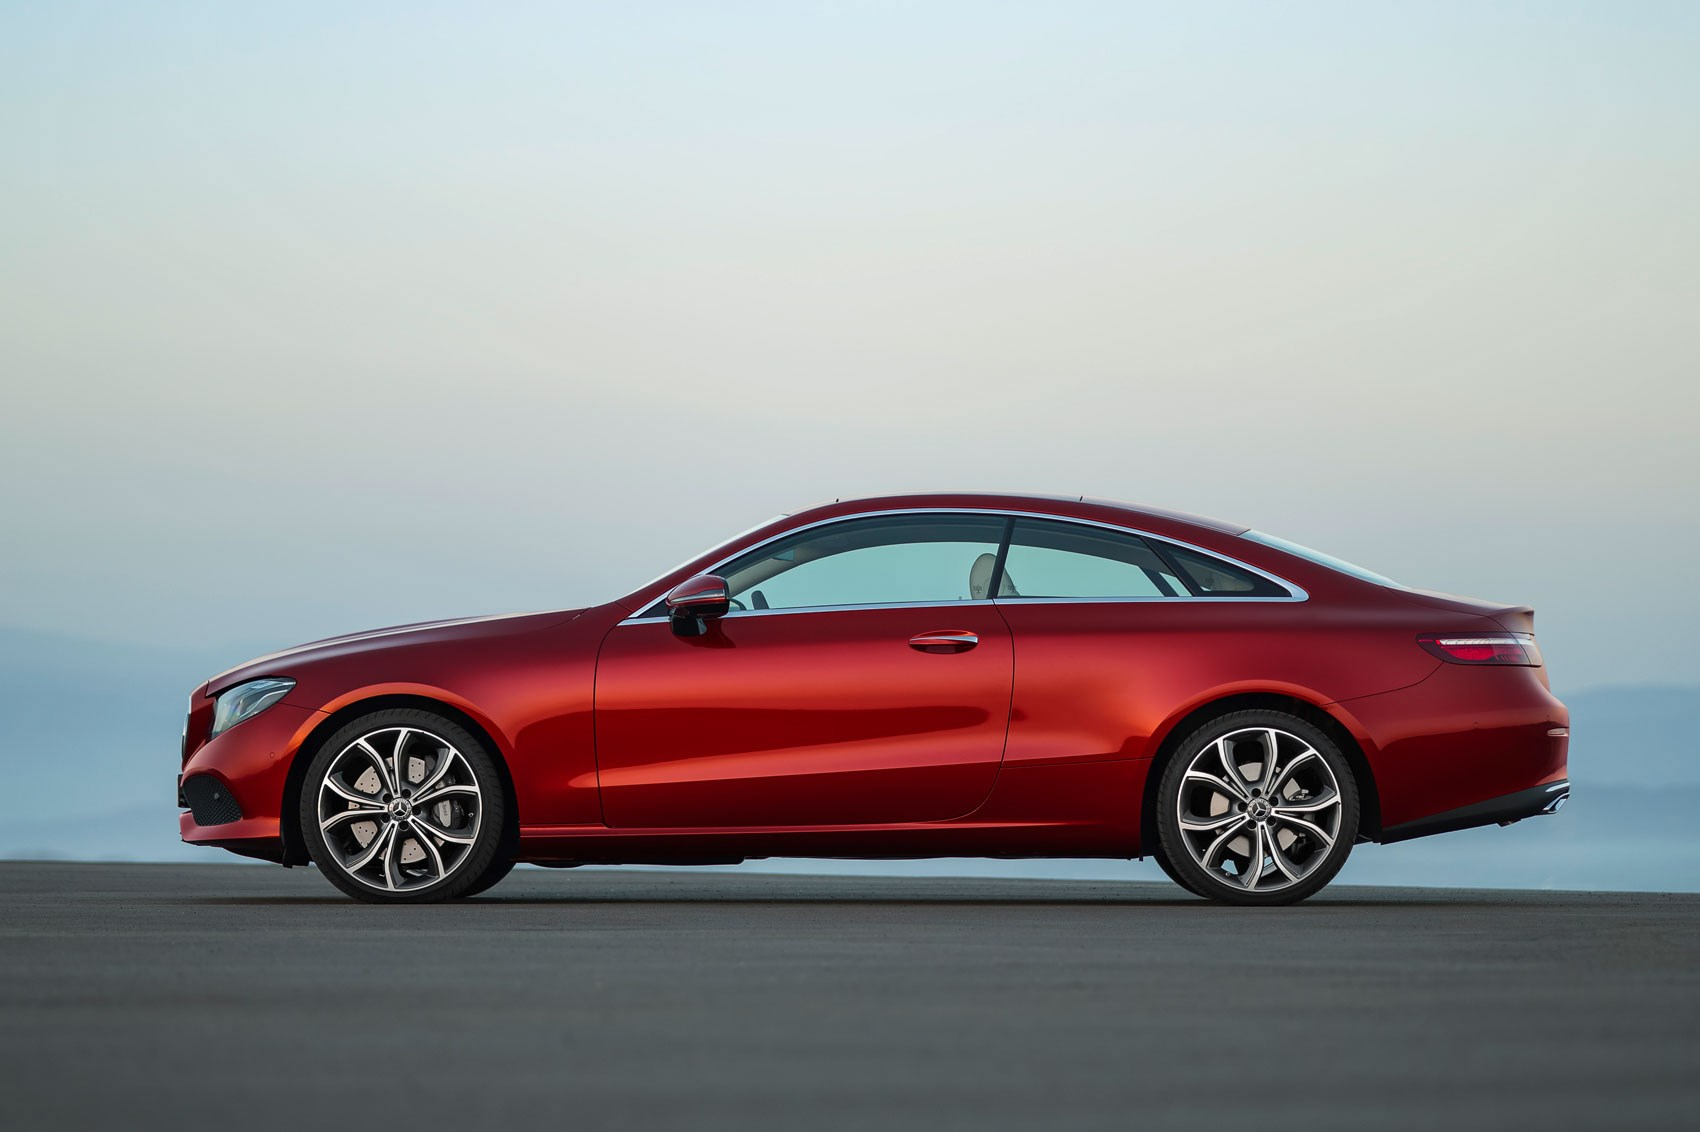 new mercedes e class coupe revealed latest two door on sale for 40k by car magazine. Black Bedroom Furniture Sets. Home Design Ideas